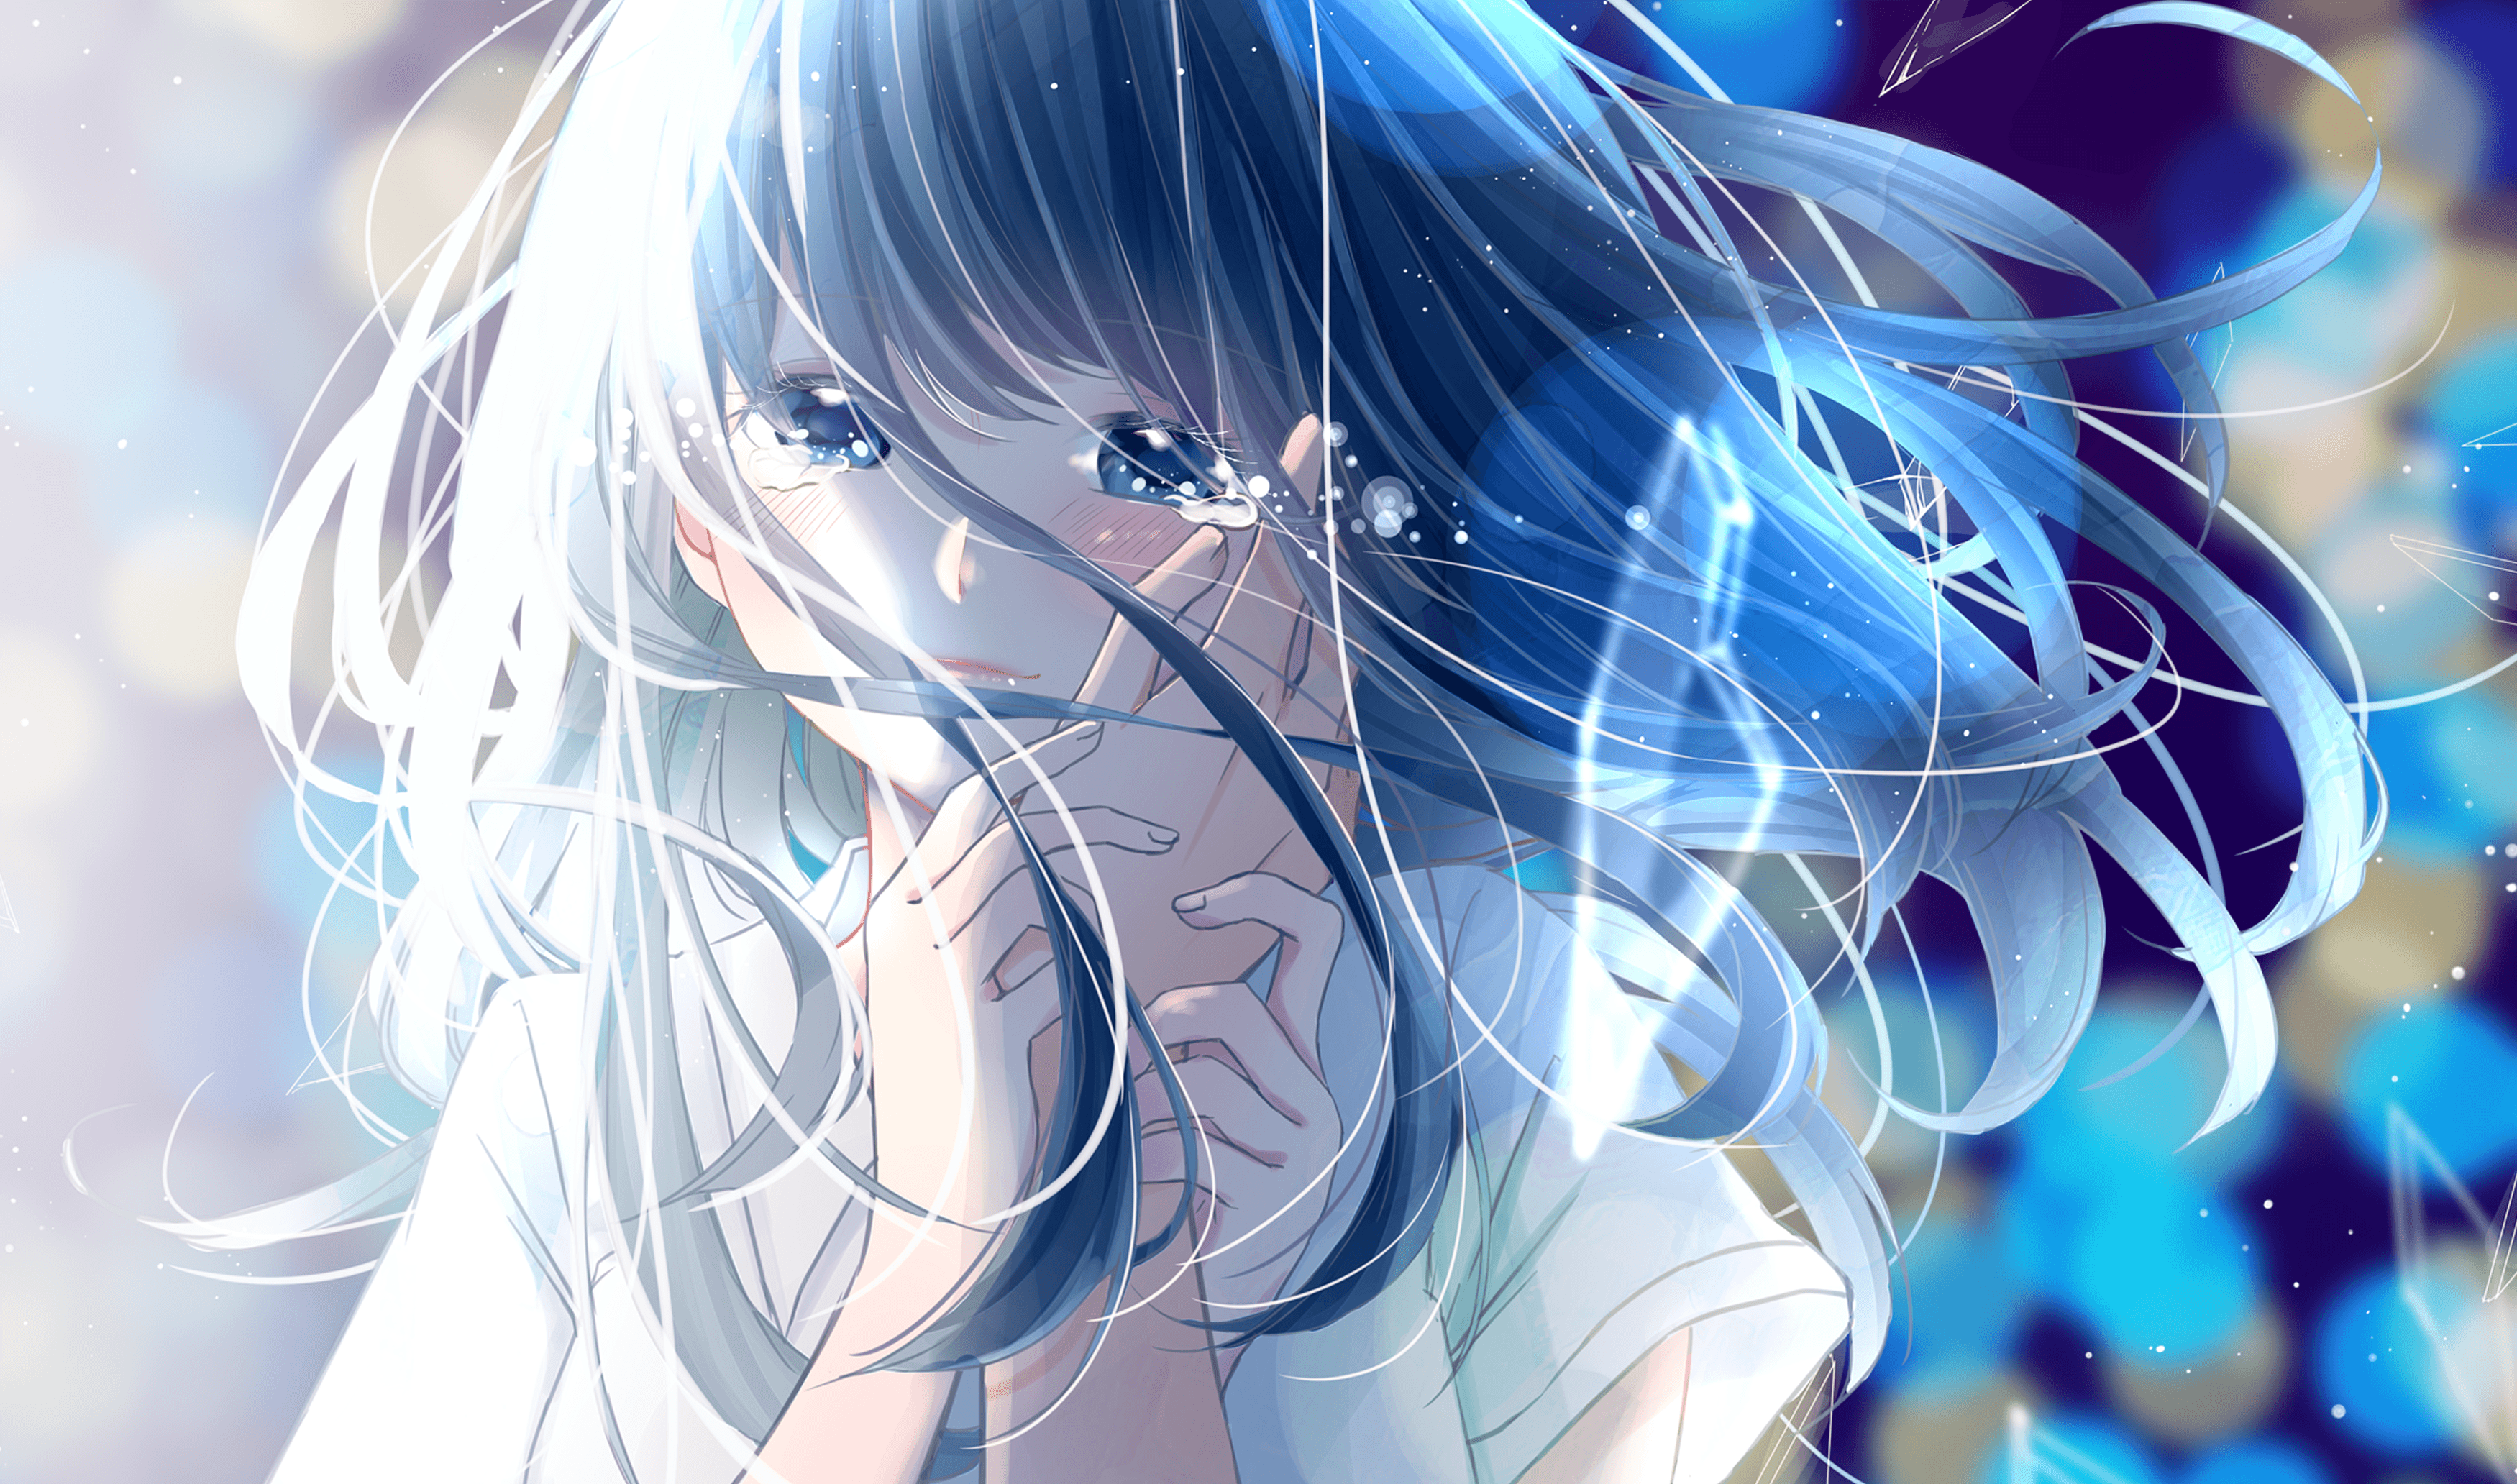 Cute Anime Girl Crying Wallpapers - Wallpaper Cave